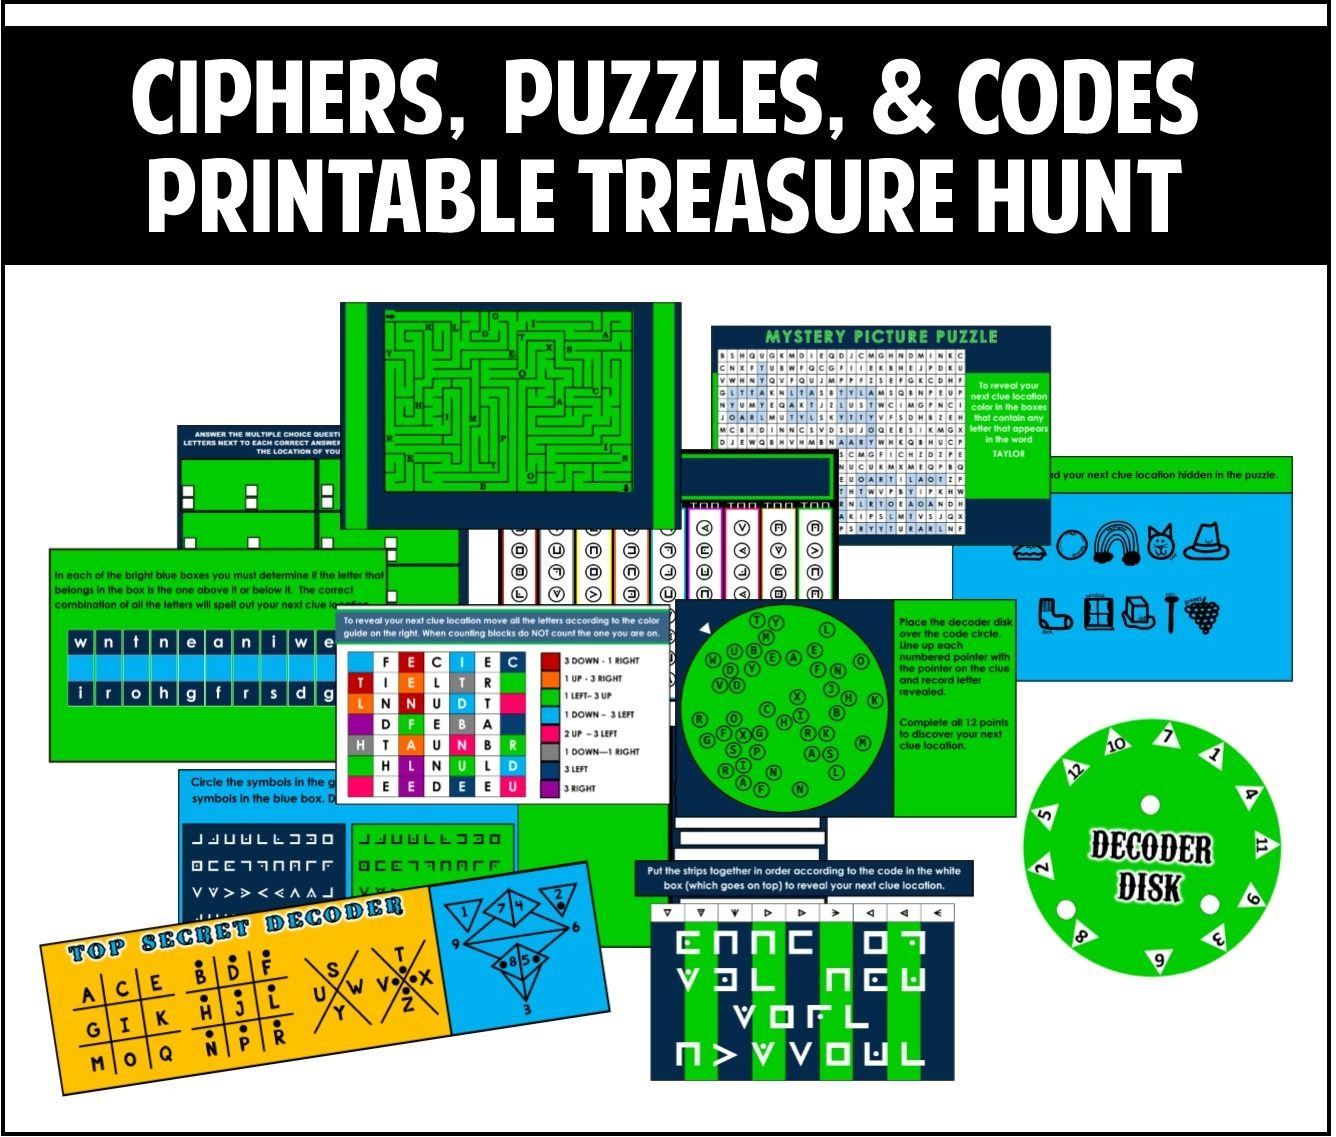 This Printable Treasure Hunt Is All About Ciphers, Puzzles, And - Free Printable Escape Room Puzzles